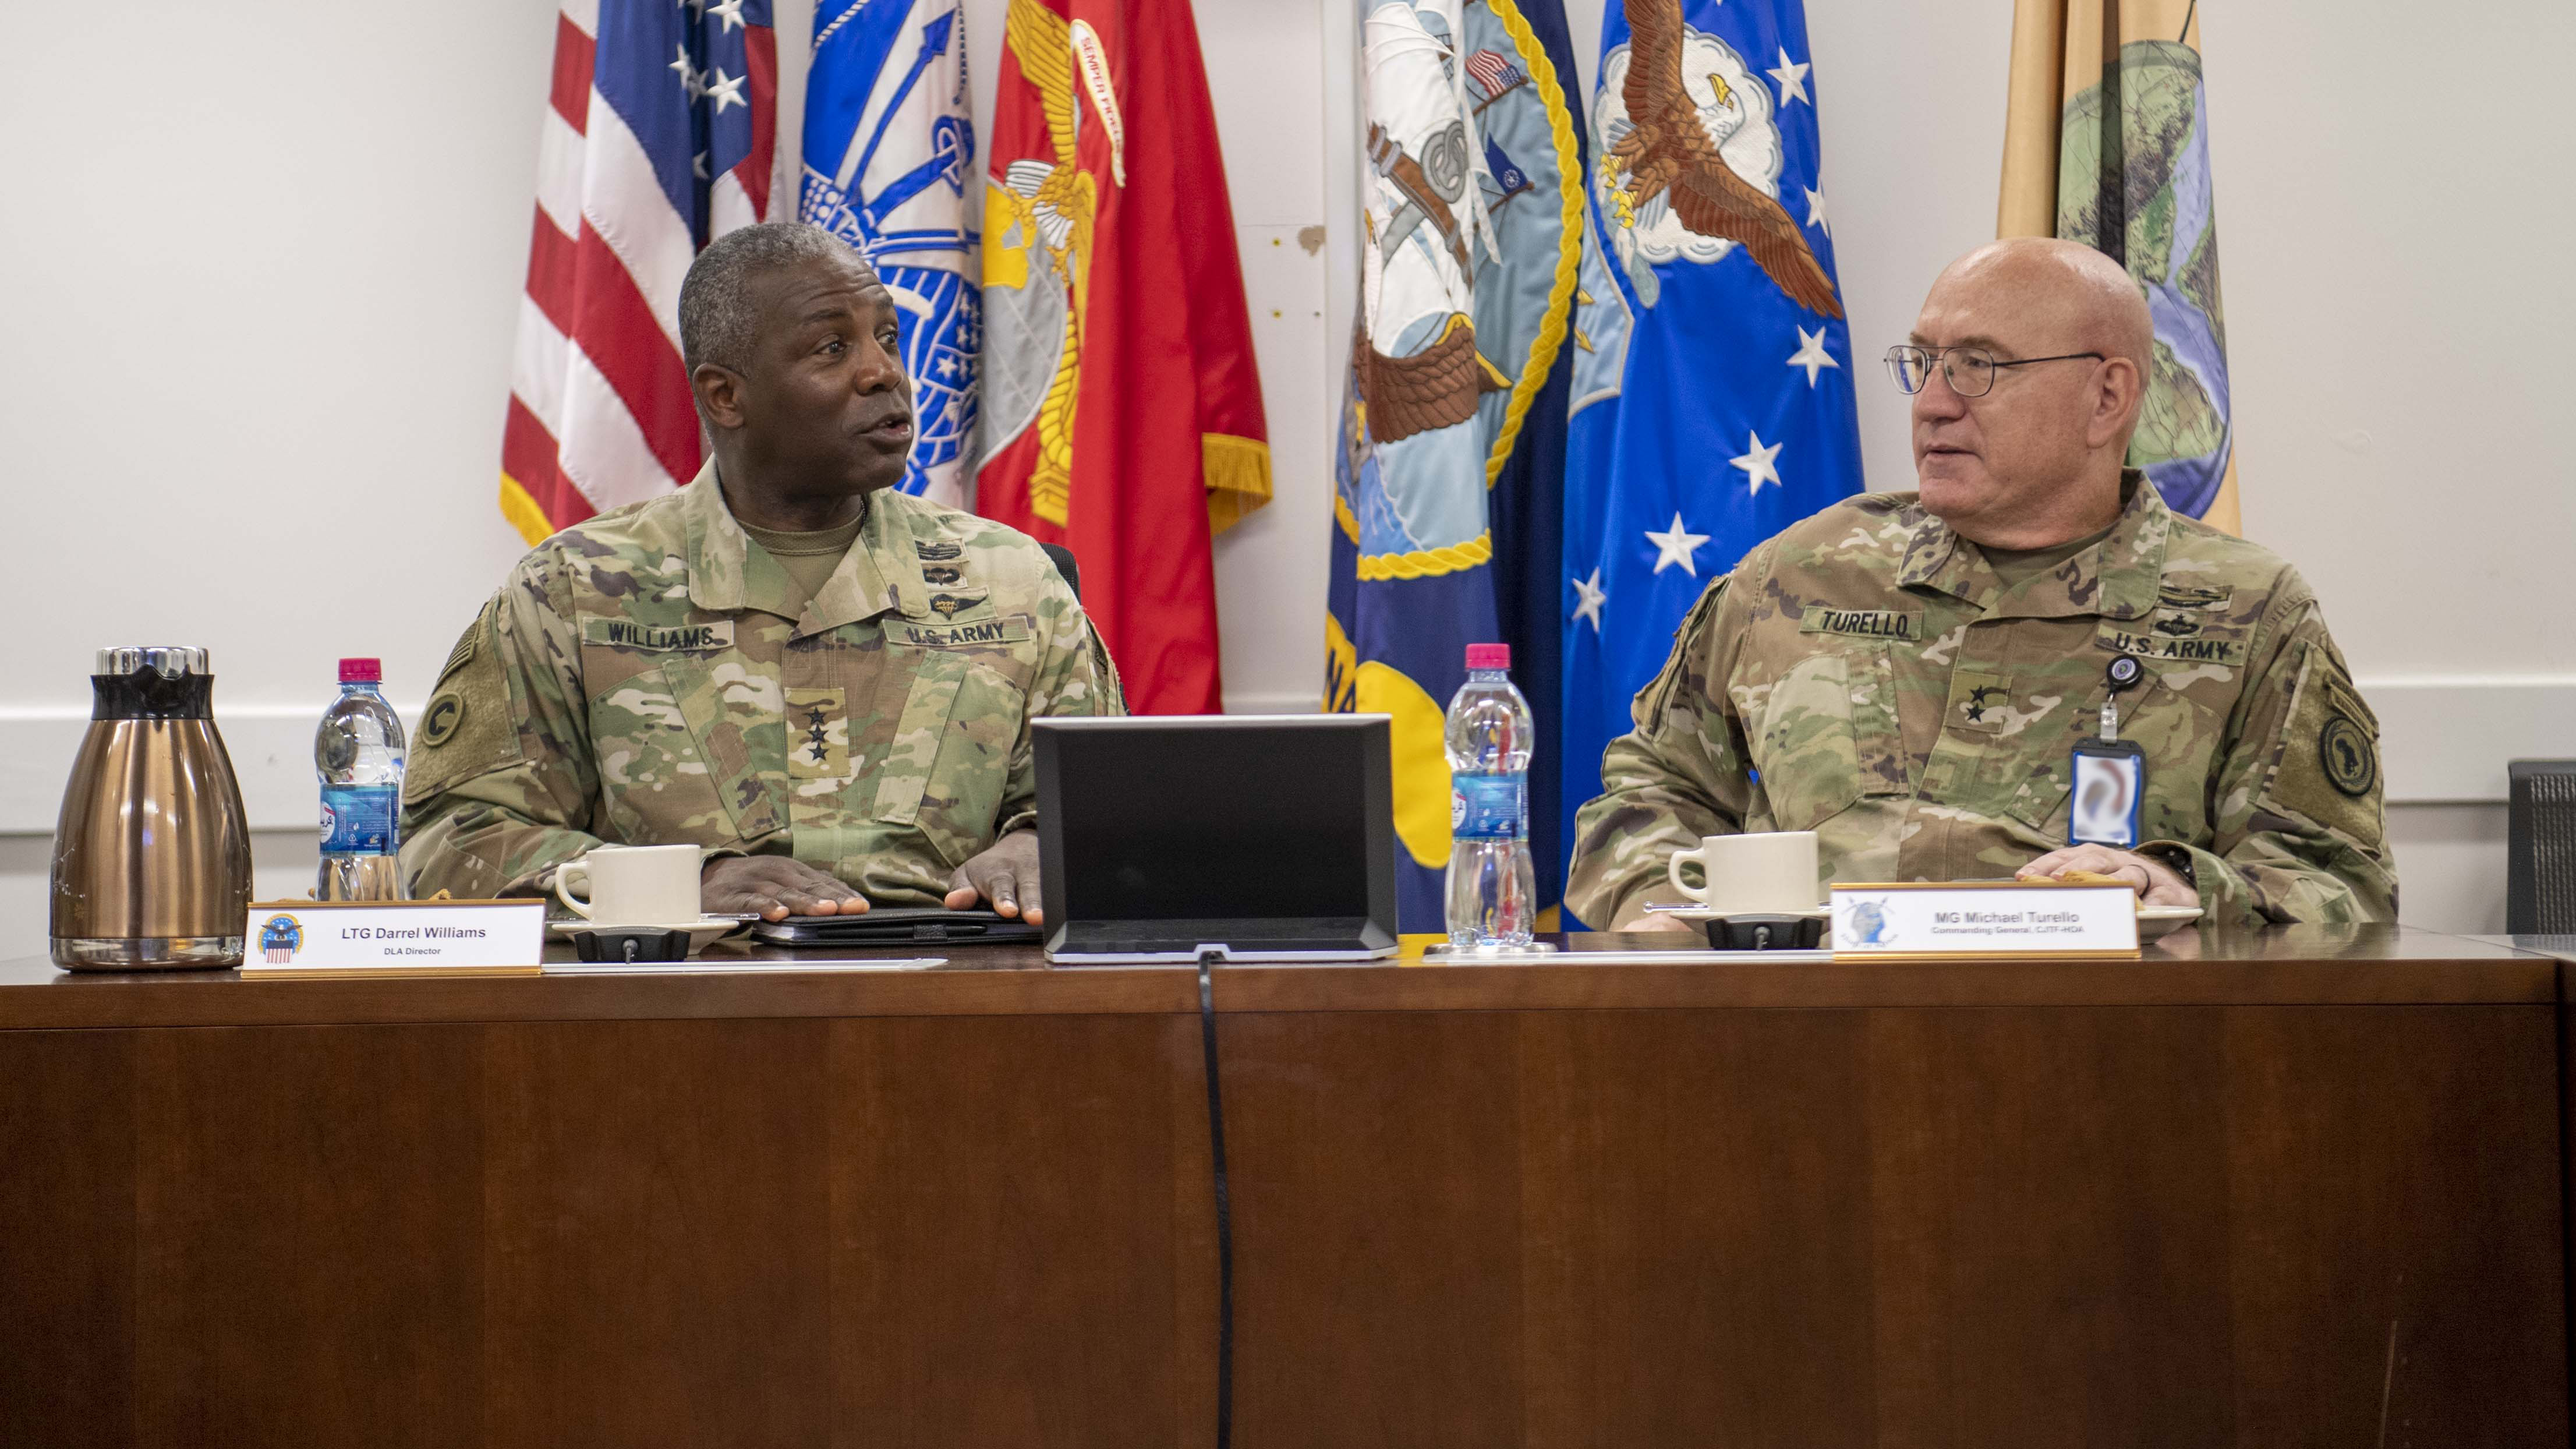 U.S. Army Maj. Gen. Michael Turello, commanding general, Combined Joint Task Force-Horn of Africa (CJTF-HOA) right, speaks with U.S. Army Lt. Gen. Darrell Williams, director, Defense Logistics Agency, at Camp Lemonnier, Djibouti, Nov. 16, 2019. Williams visited Camp Lemonnier to learn about the CJTF-HOA mission and its contributions to East Africa. (U.S. Air Force photo by Staff Sgt. J.D. Strong II)